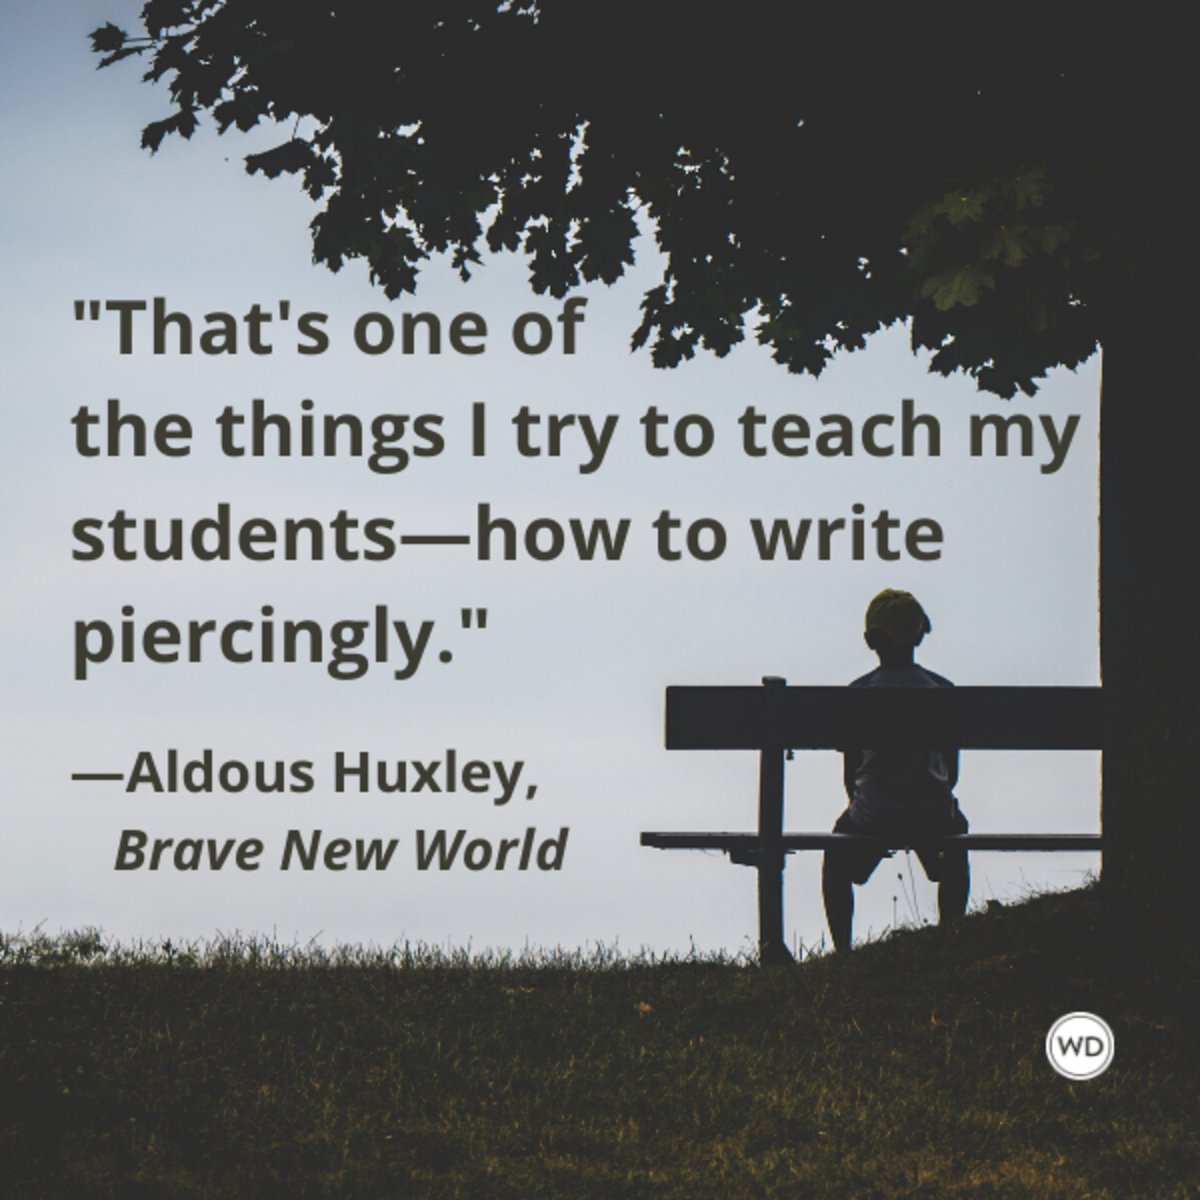 aldous_huxley_brave_new_world_thats_one_of_the_things_i_try_to_teach_my_students_how_to_write_piercingly